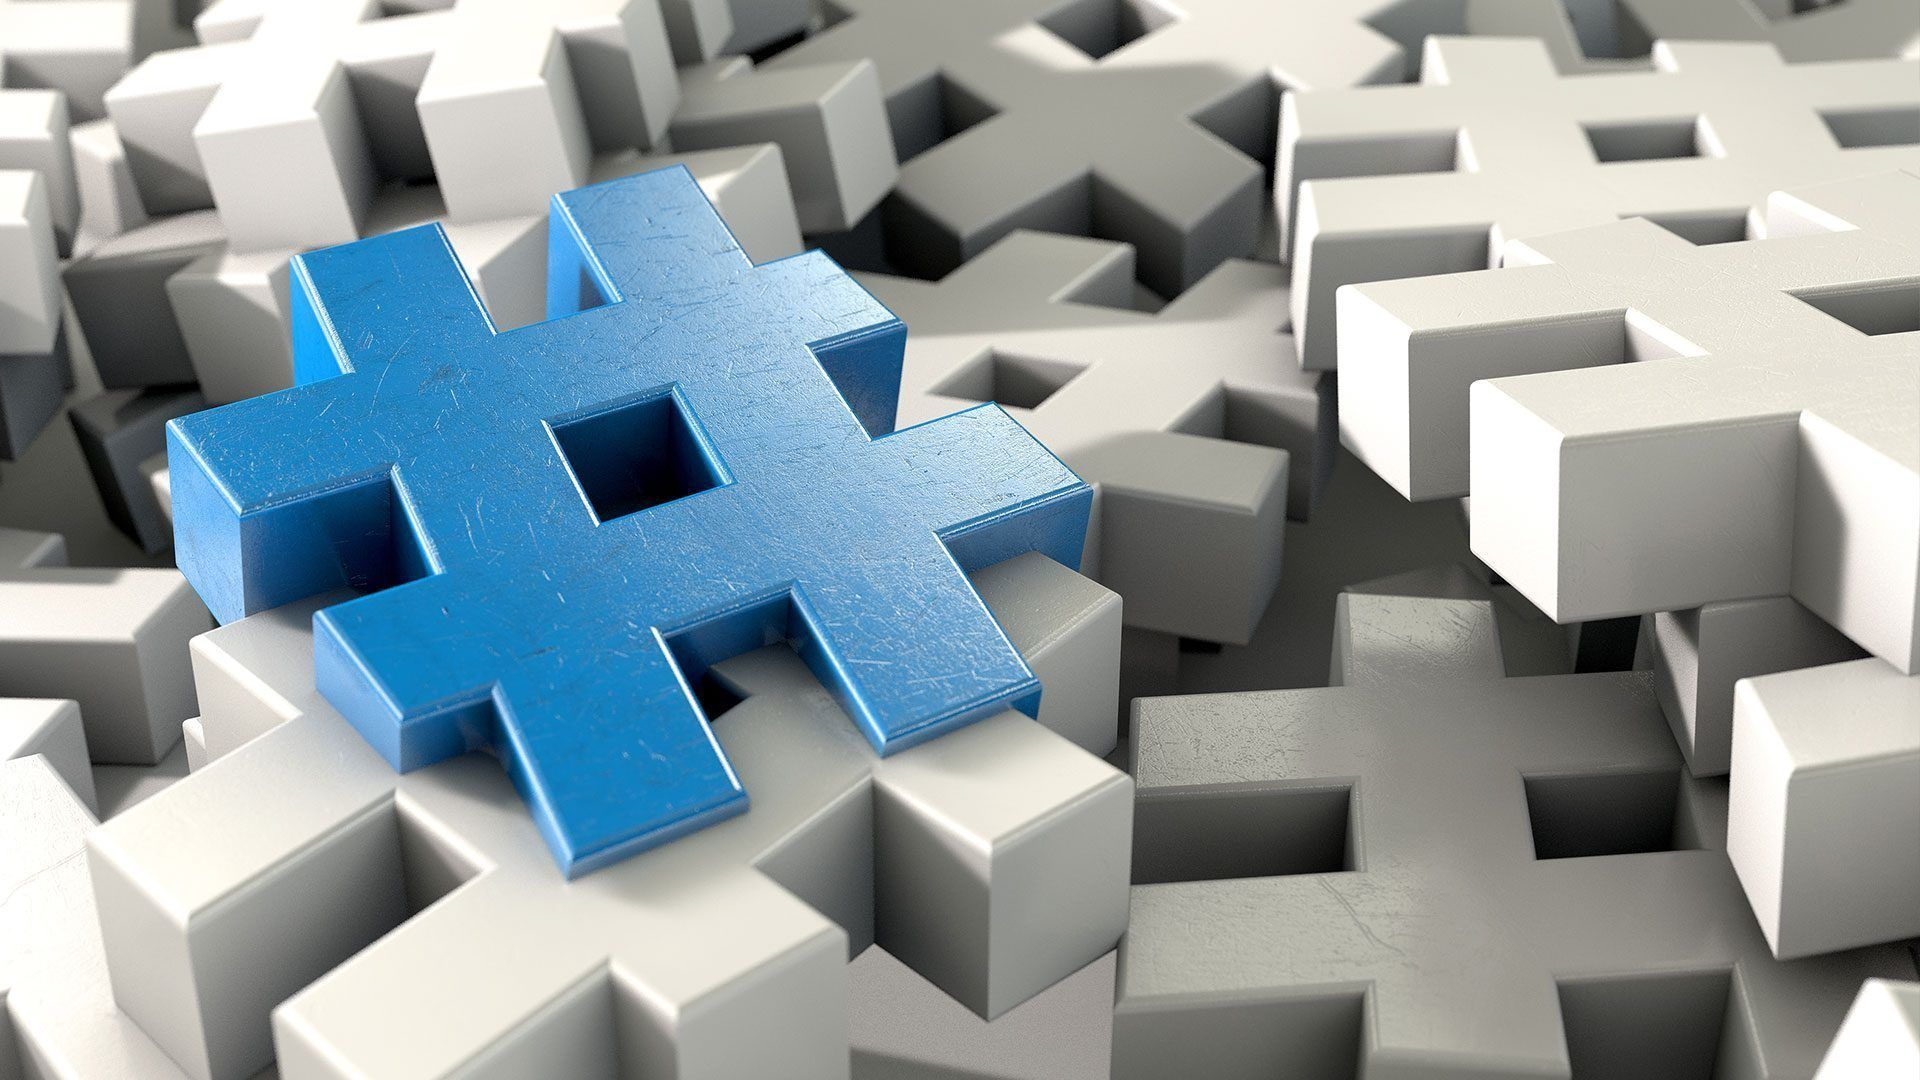 Hashtag hours on Twitter